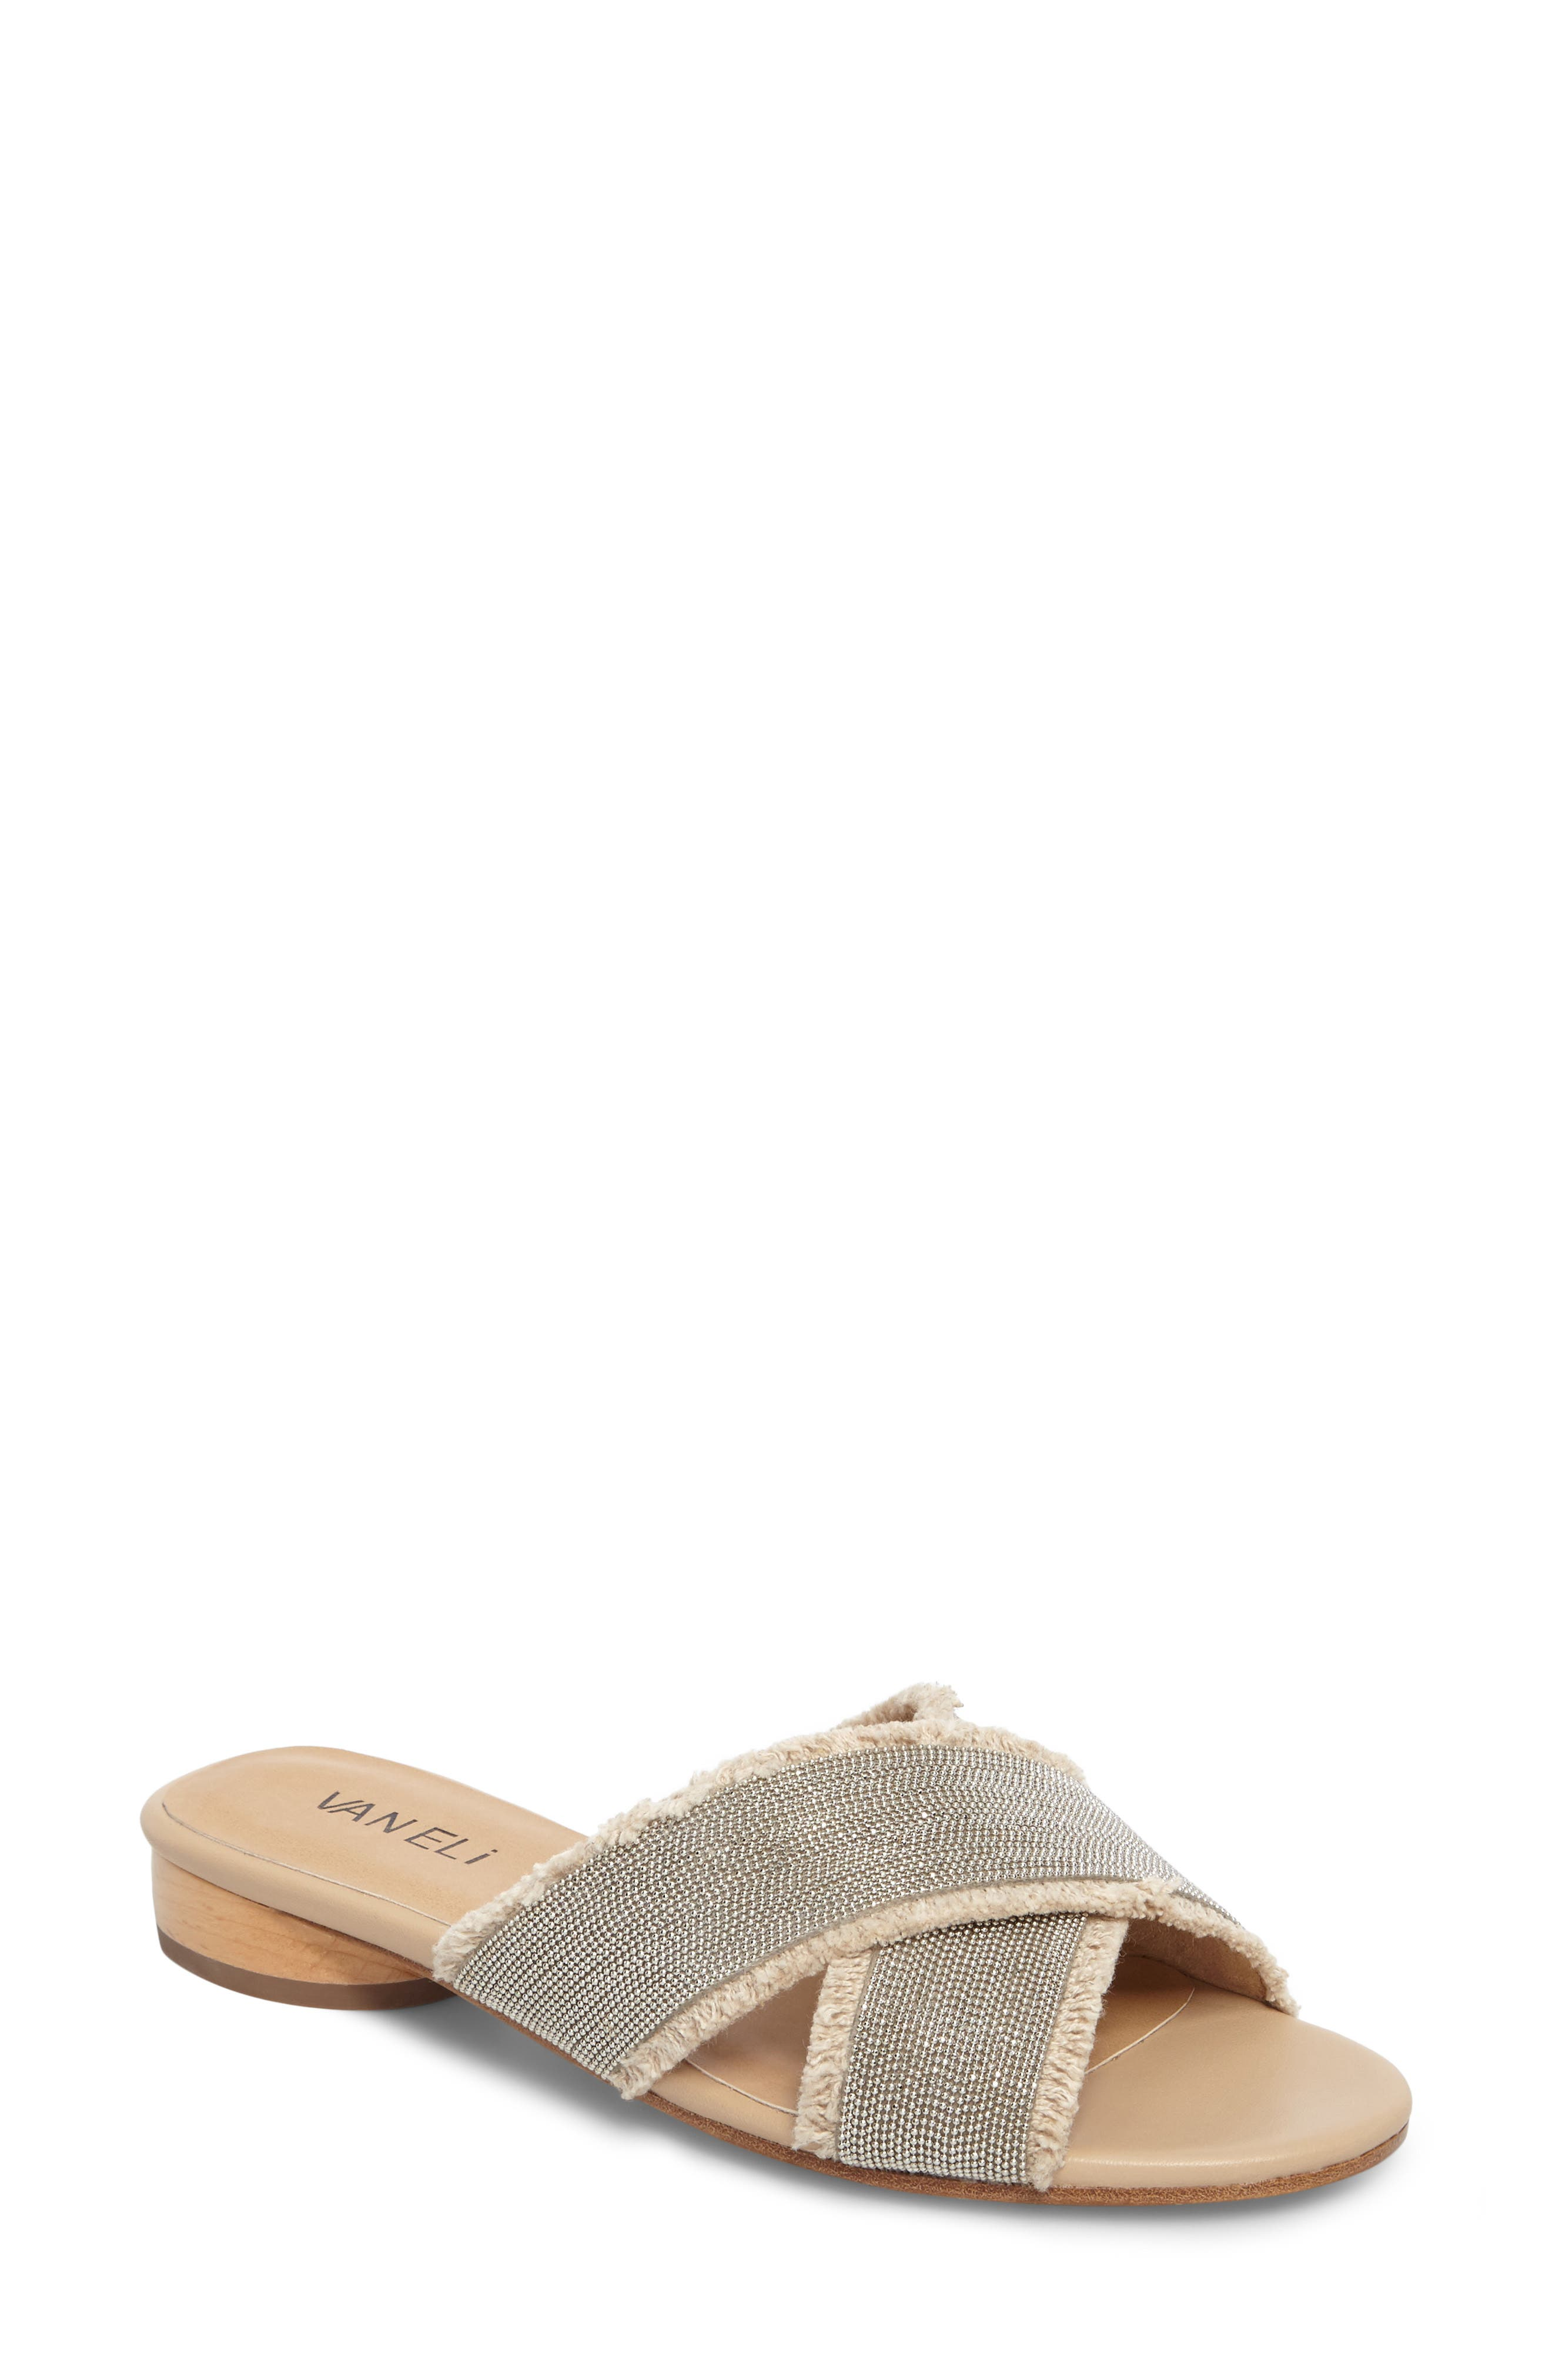 Baret Slide Sandal,                             Main thumbnail 1, color,